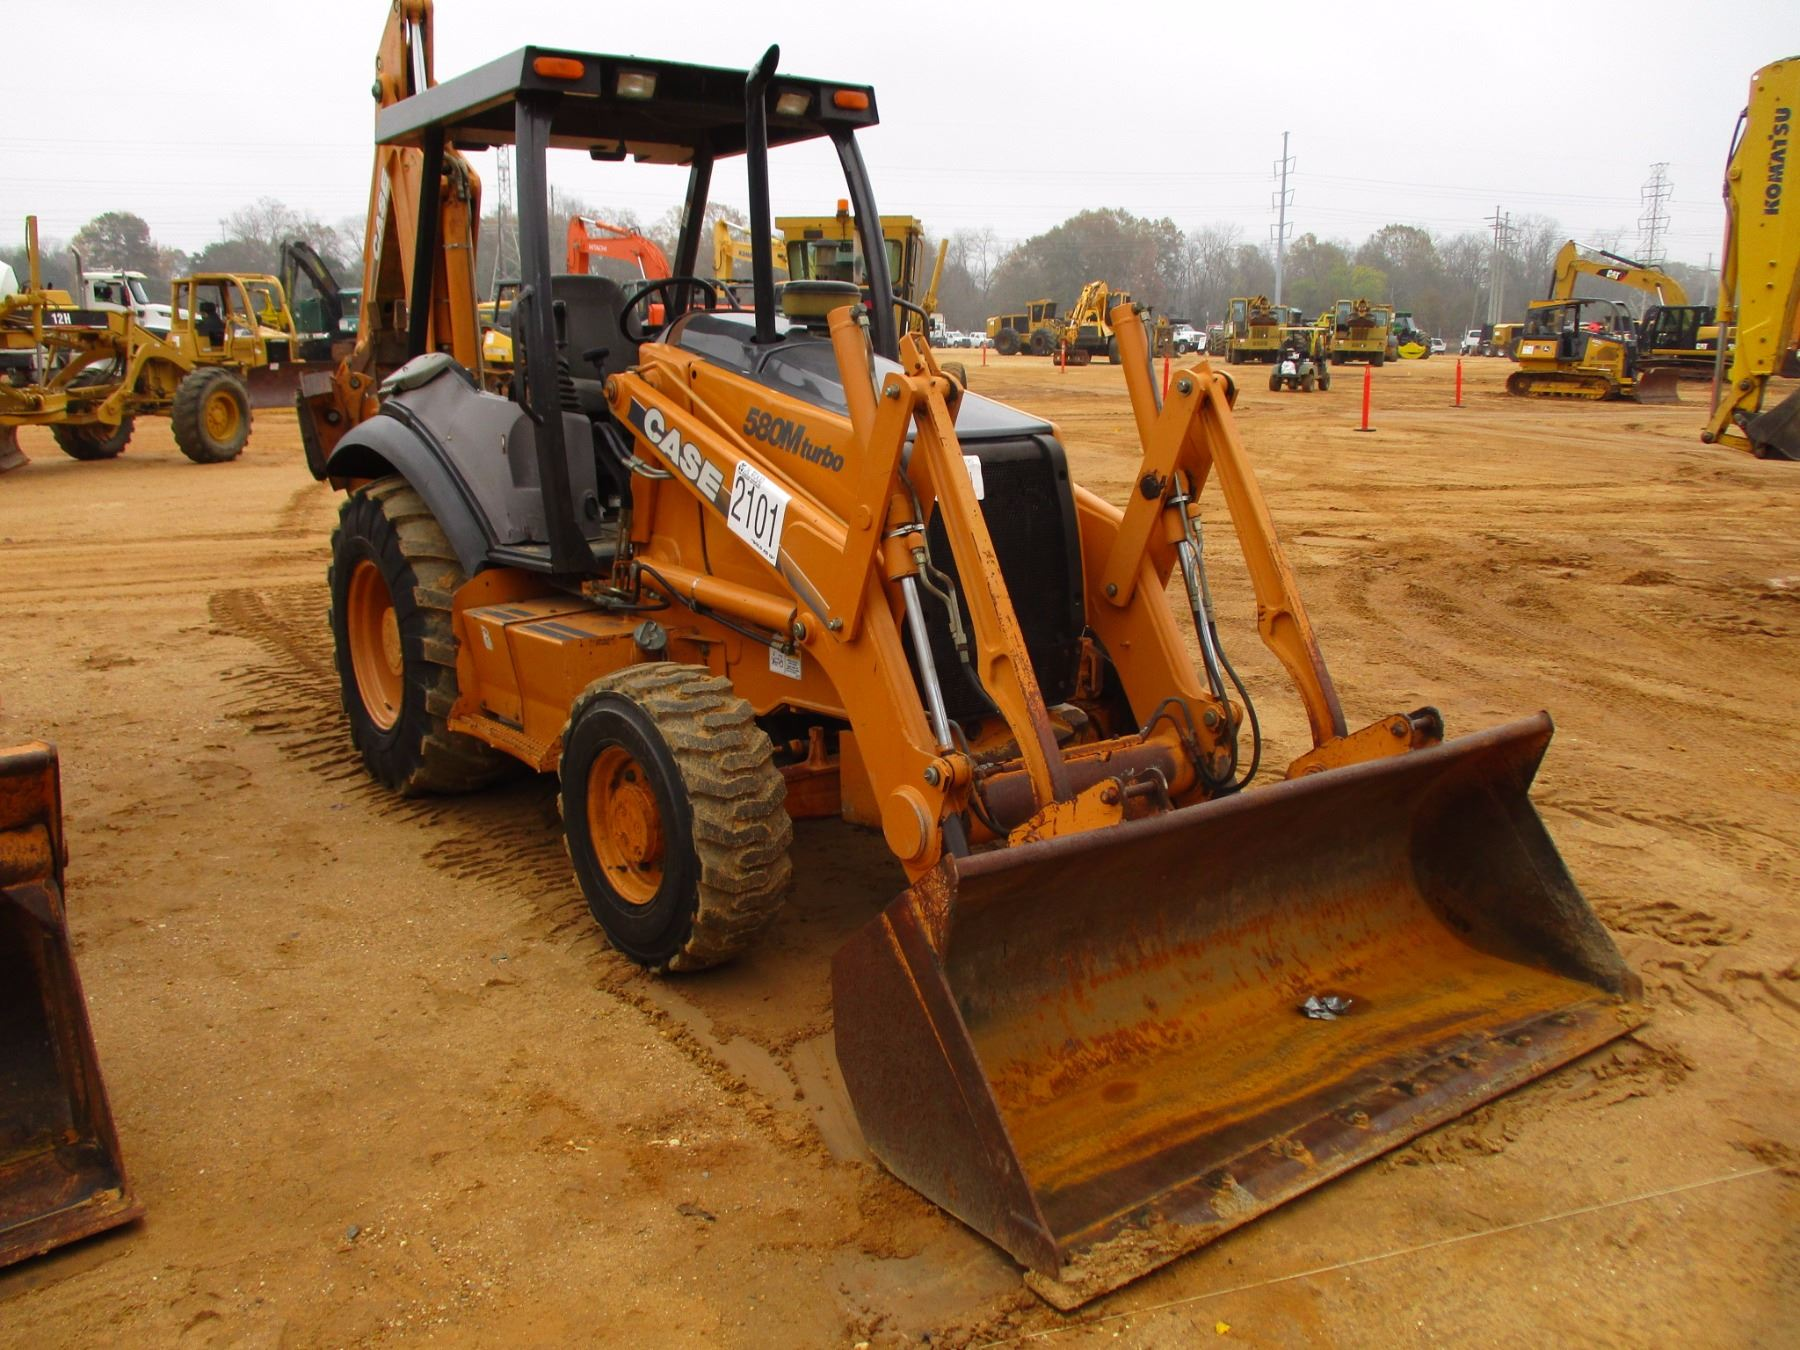 medium resolution of  image 2 2003 case 580m loader backhoe vin sn jjg0309088 4x4